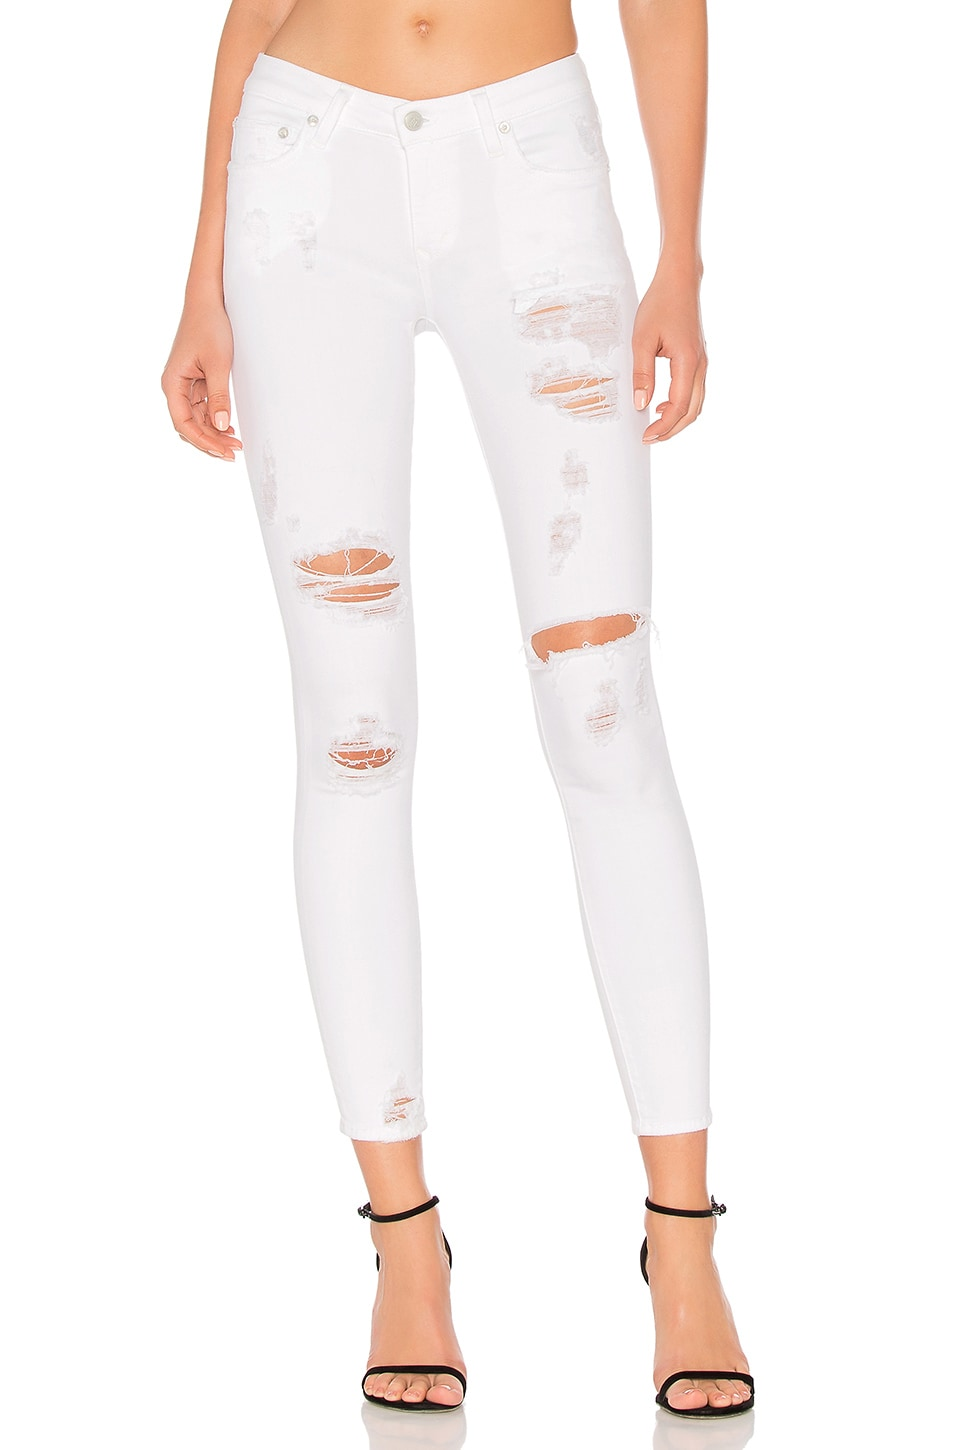 Lovers + Friends Ricky Skinny Jean in Alderwood